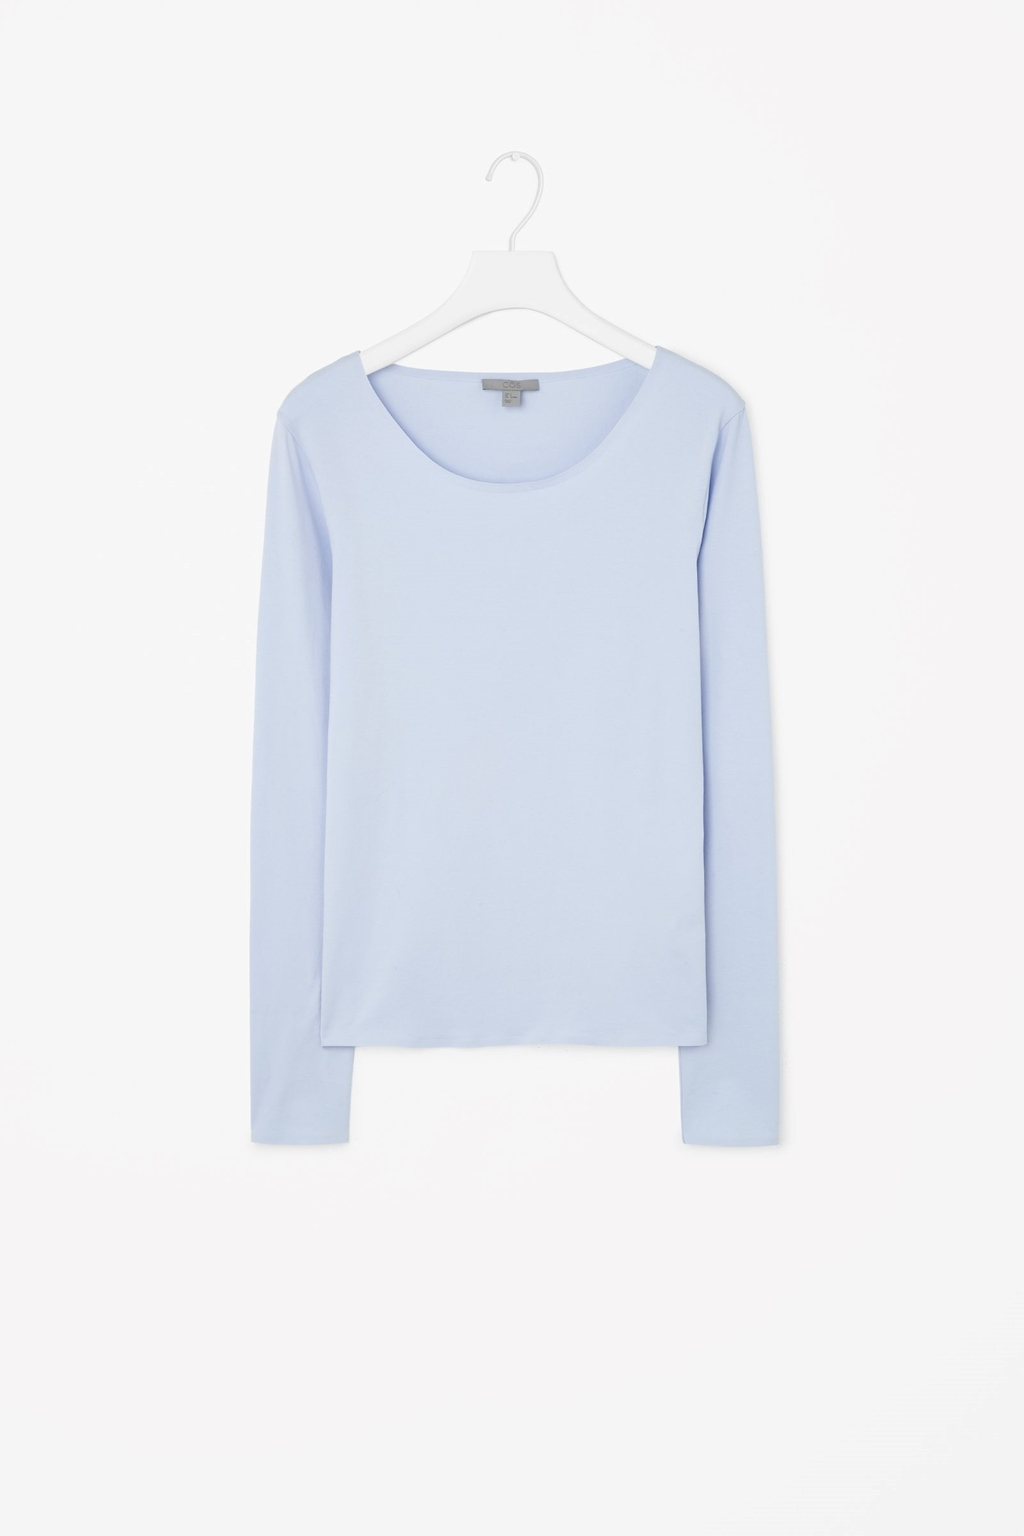 Long Sleeve Cotton T Shirt - pattern: plain; style: t-shirt; predominant colour: pale blue; secondary colour: pale blue; occasions: casual, creative work; length: standard; neckline: scoop; fibres: cotton - 100%; fit: body skimming; sleeve length: long sleeve; sleeve style: standard; pattern type: fabric; texture group: jersey - stretchy/drapey; season: s/s 2015; wardrobe: highlight